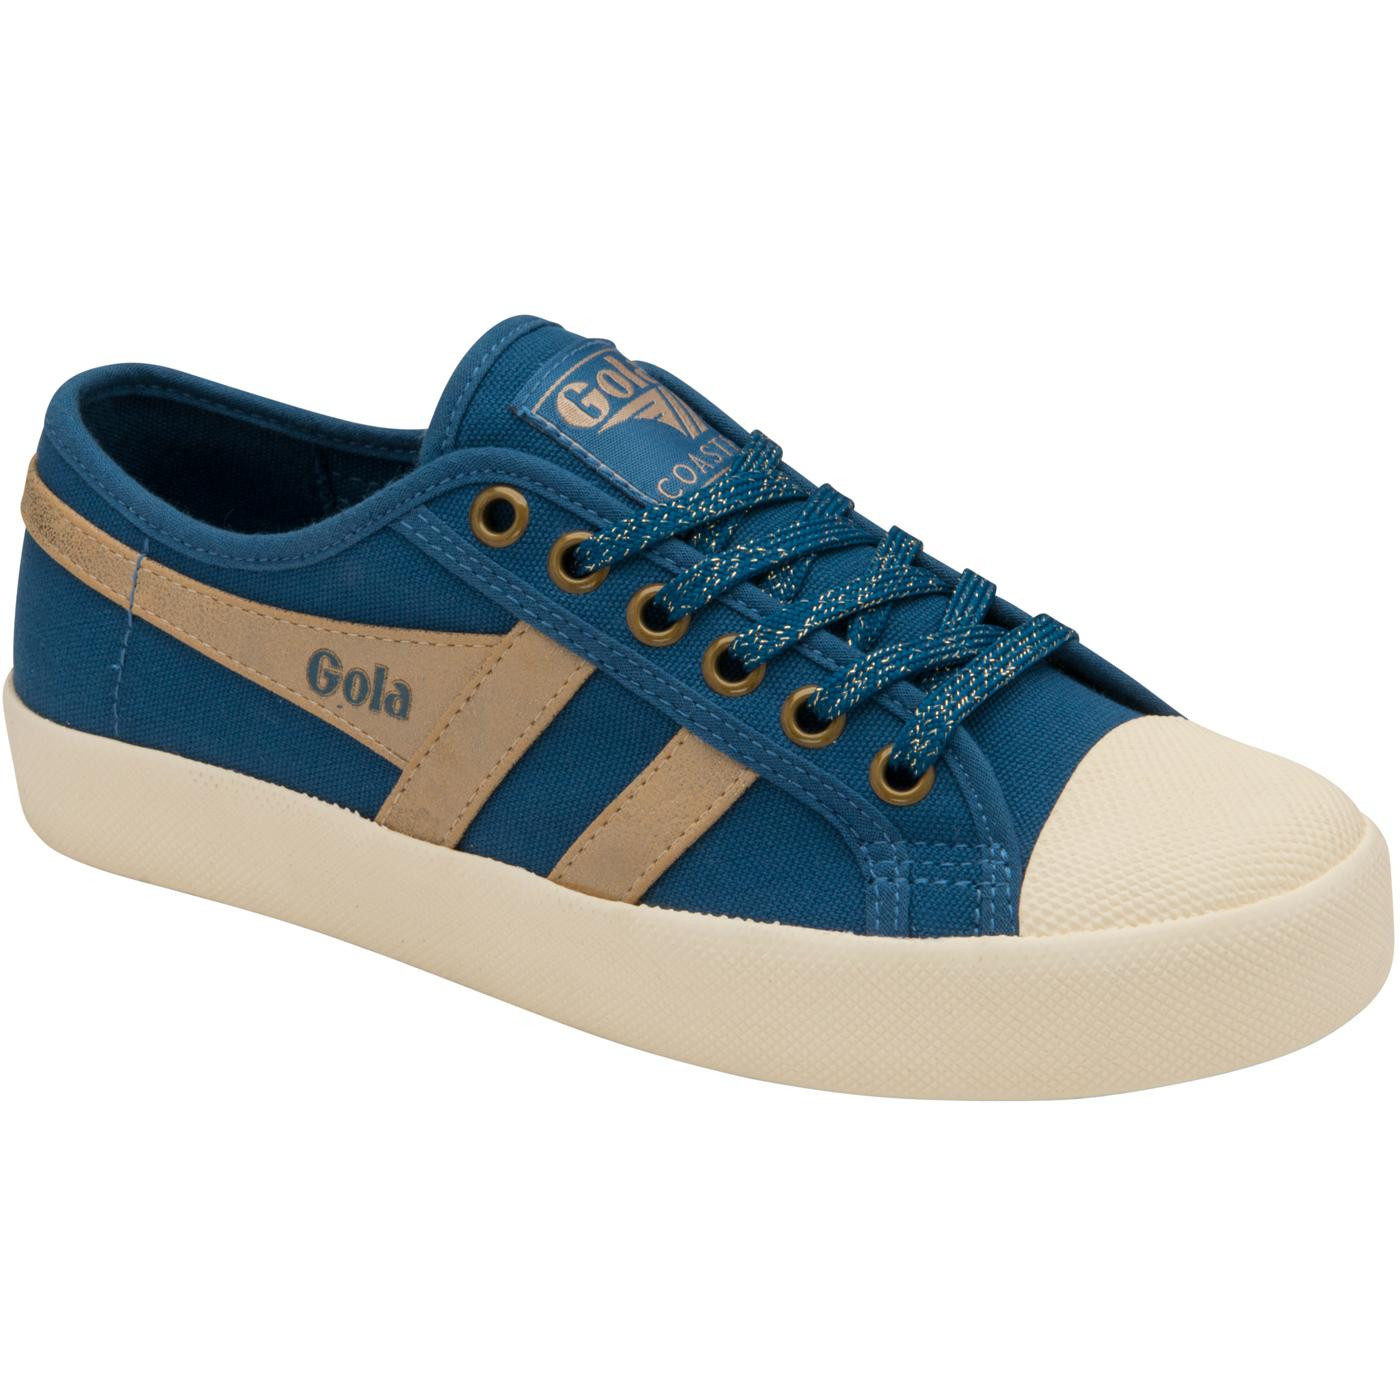 Coaster Mirror GOLA Retro Plimsoll Trainers (MB/G)